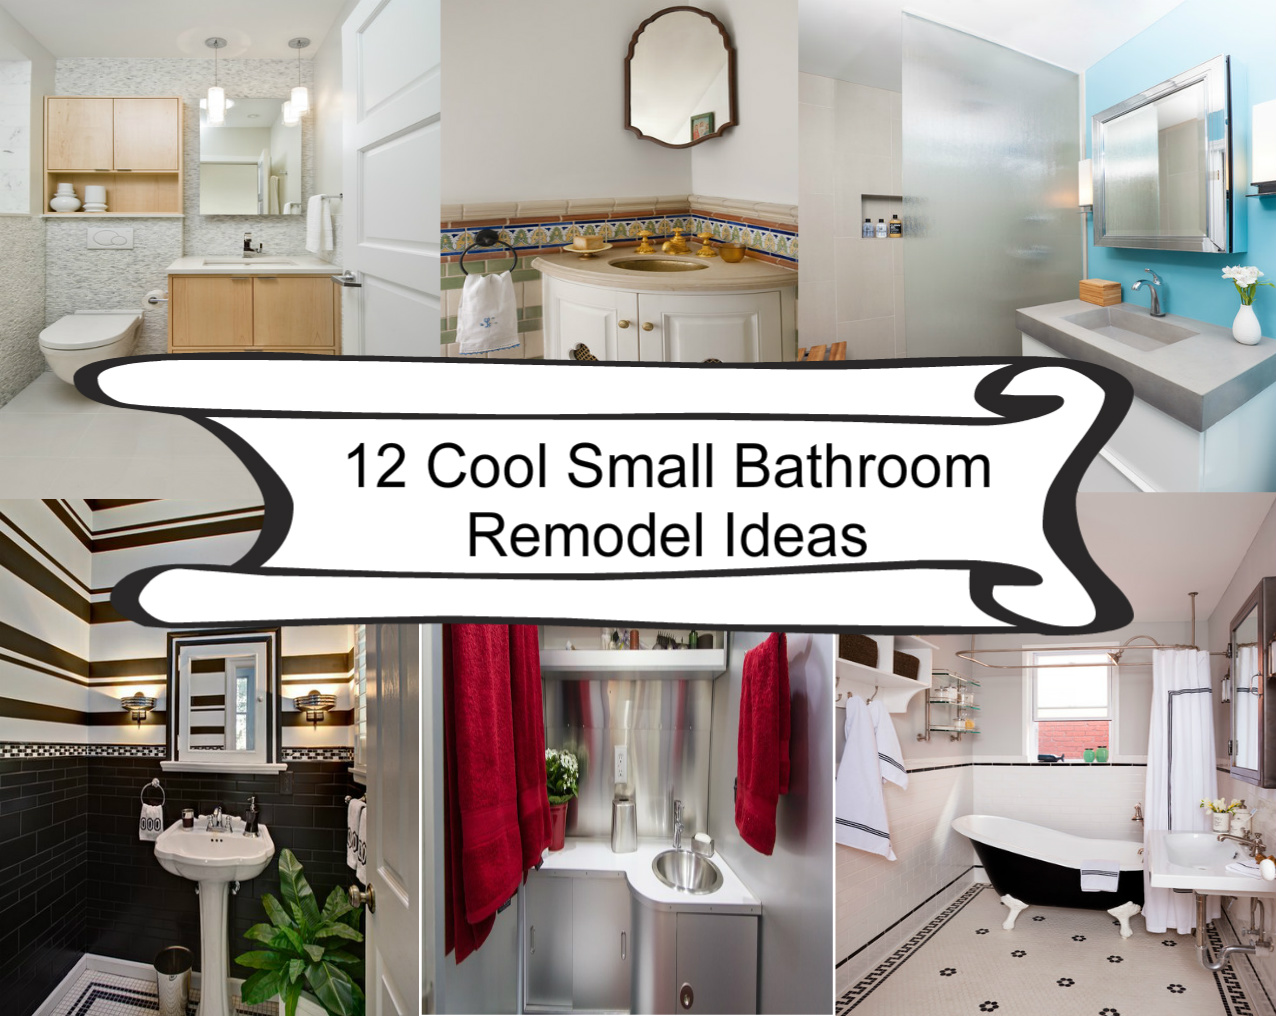 12 Cool Small Bathroom Remodel Ideas